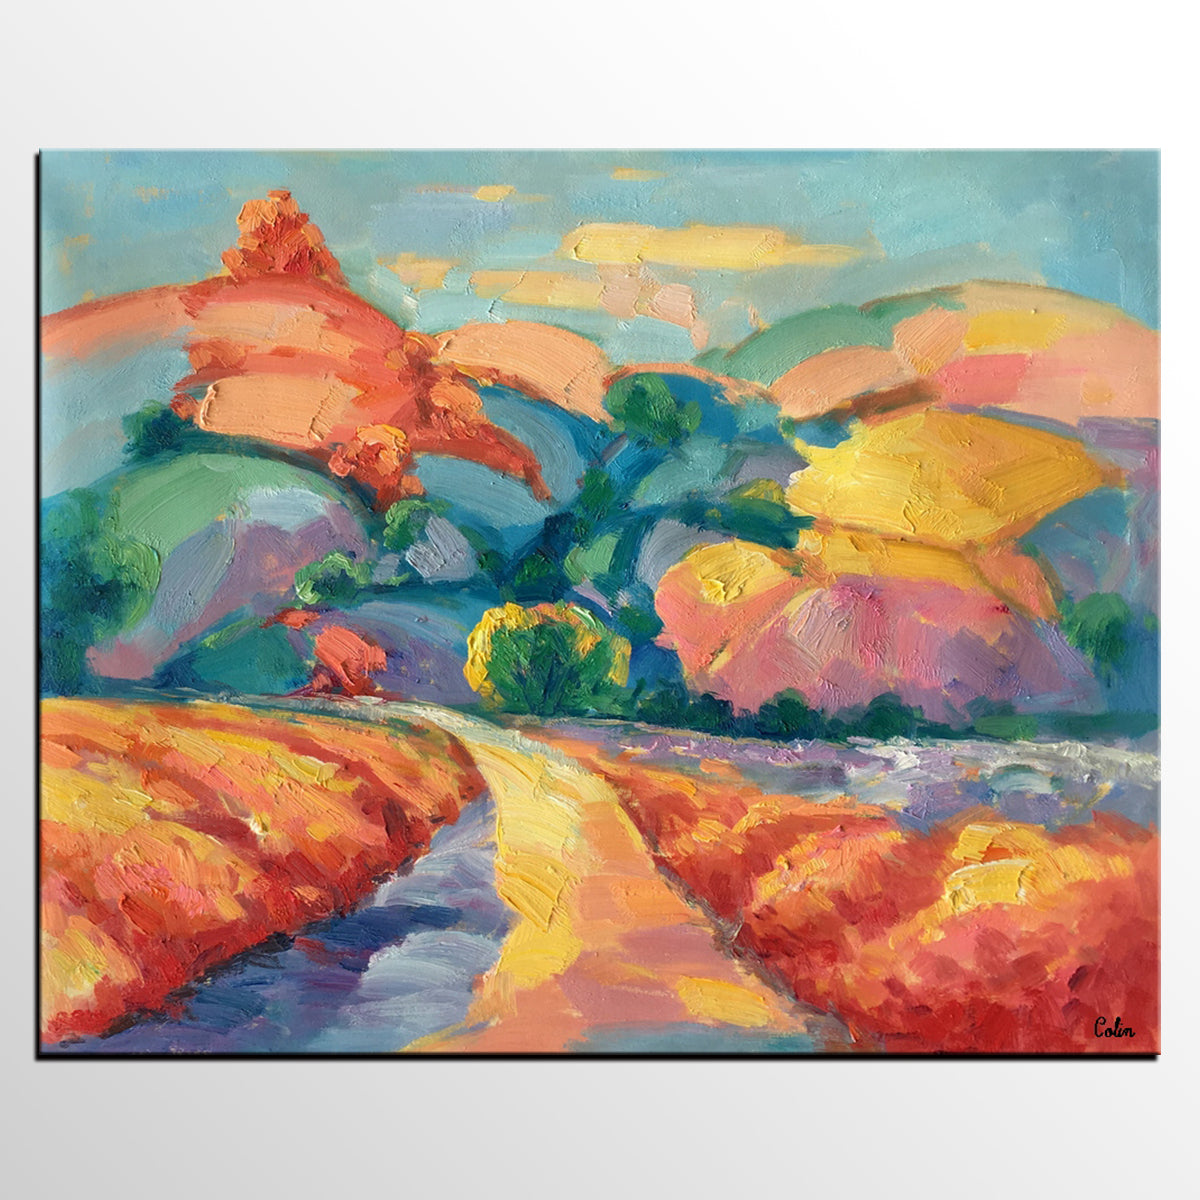 Mountain Landscape Painting, Abstract Impasto Art, Canvas Wall Art for Sale, Heavy Texture Oil Painting - artworkcanvas